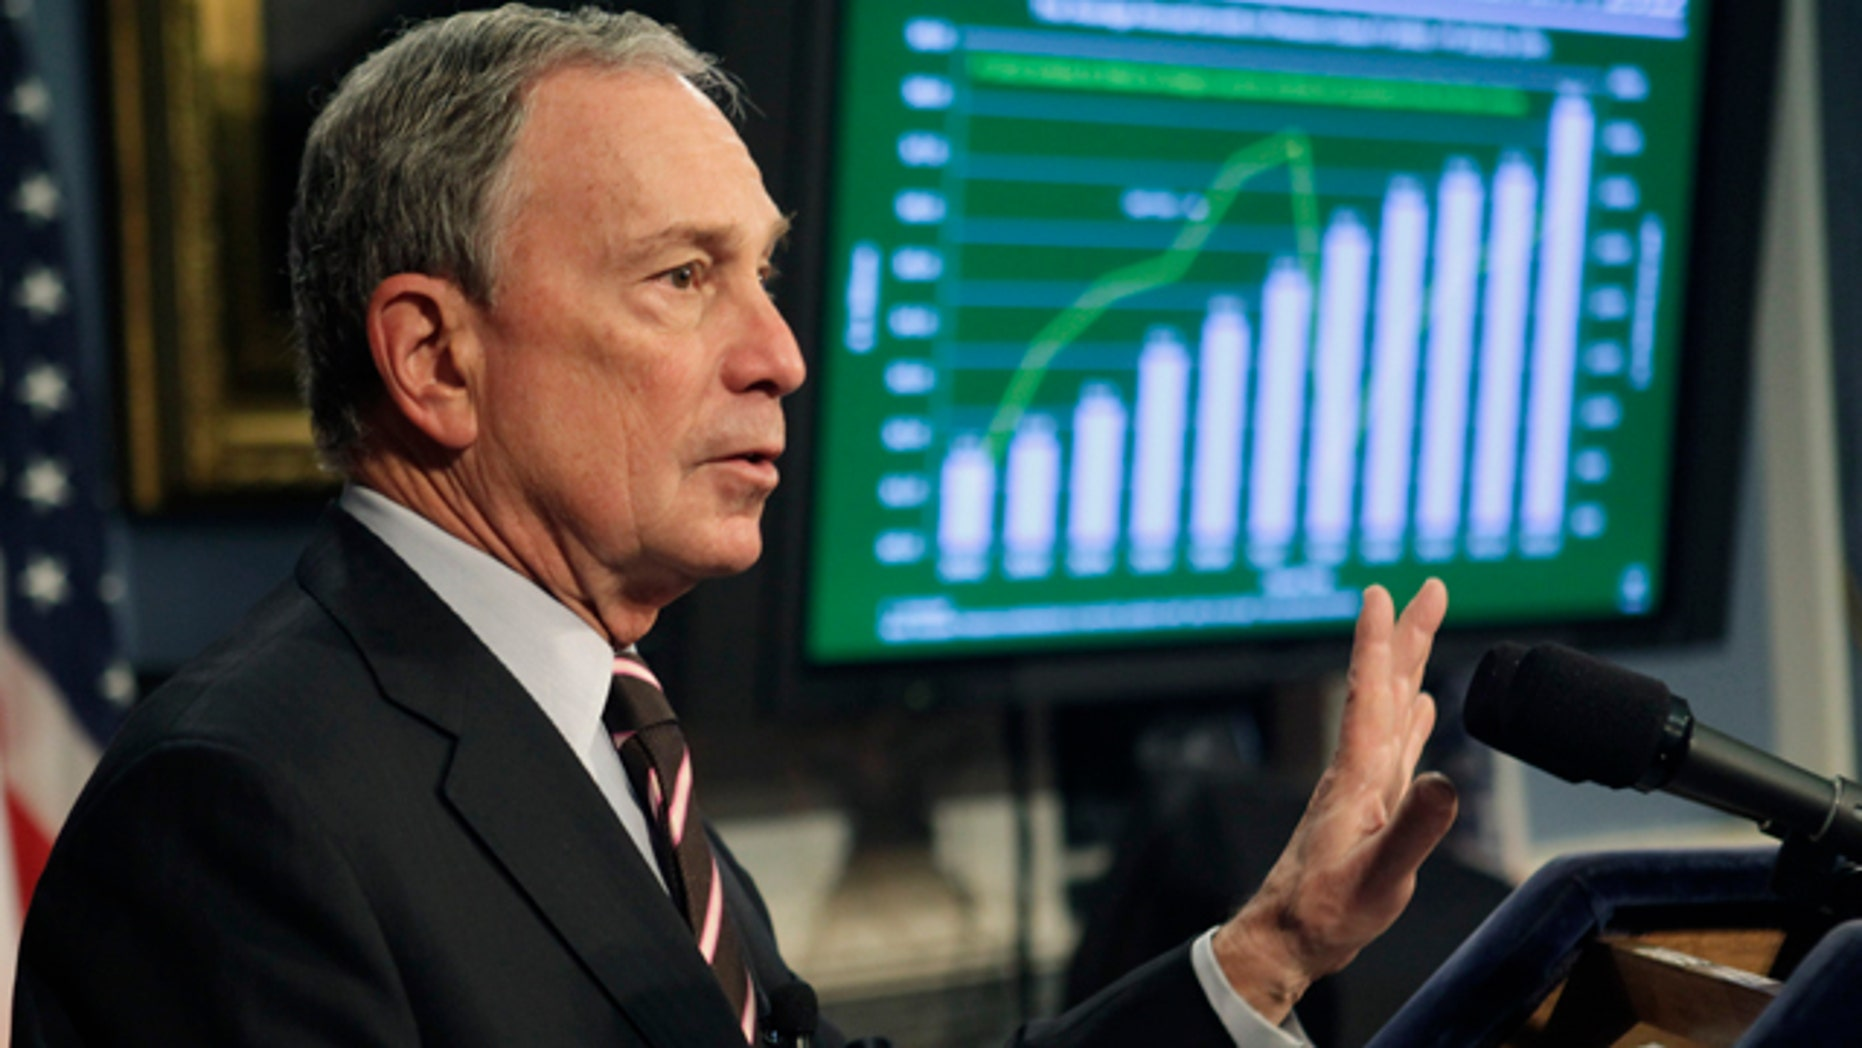 New York City Mayor Michael Bloomberg delivers the fiscal year 2012 budget, Thursday, Feb. 17, 2011 at City Hall in New York.